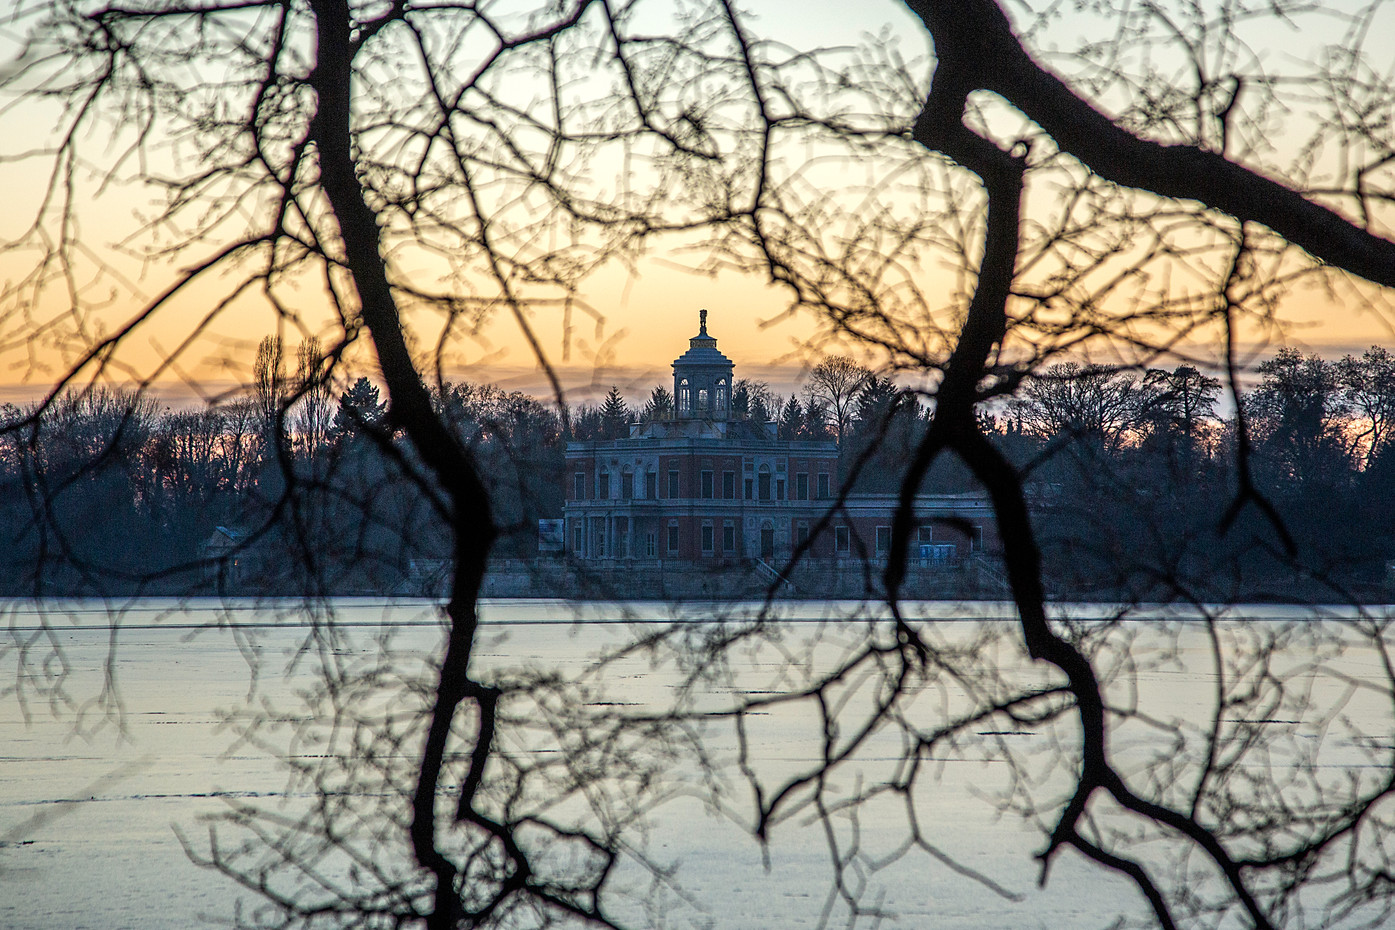 The Marble Palace at sunrise in Potsdam, Germany